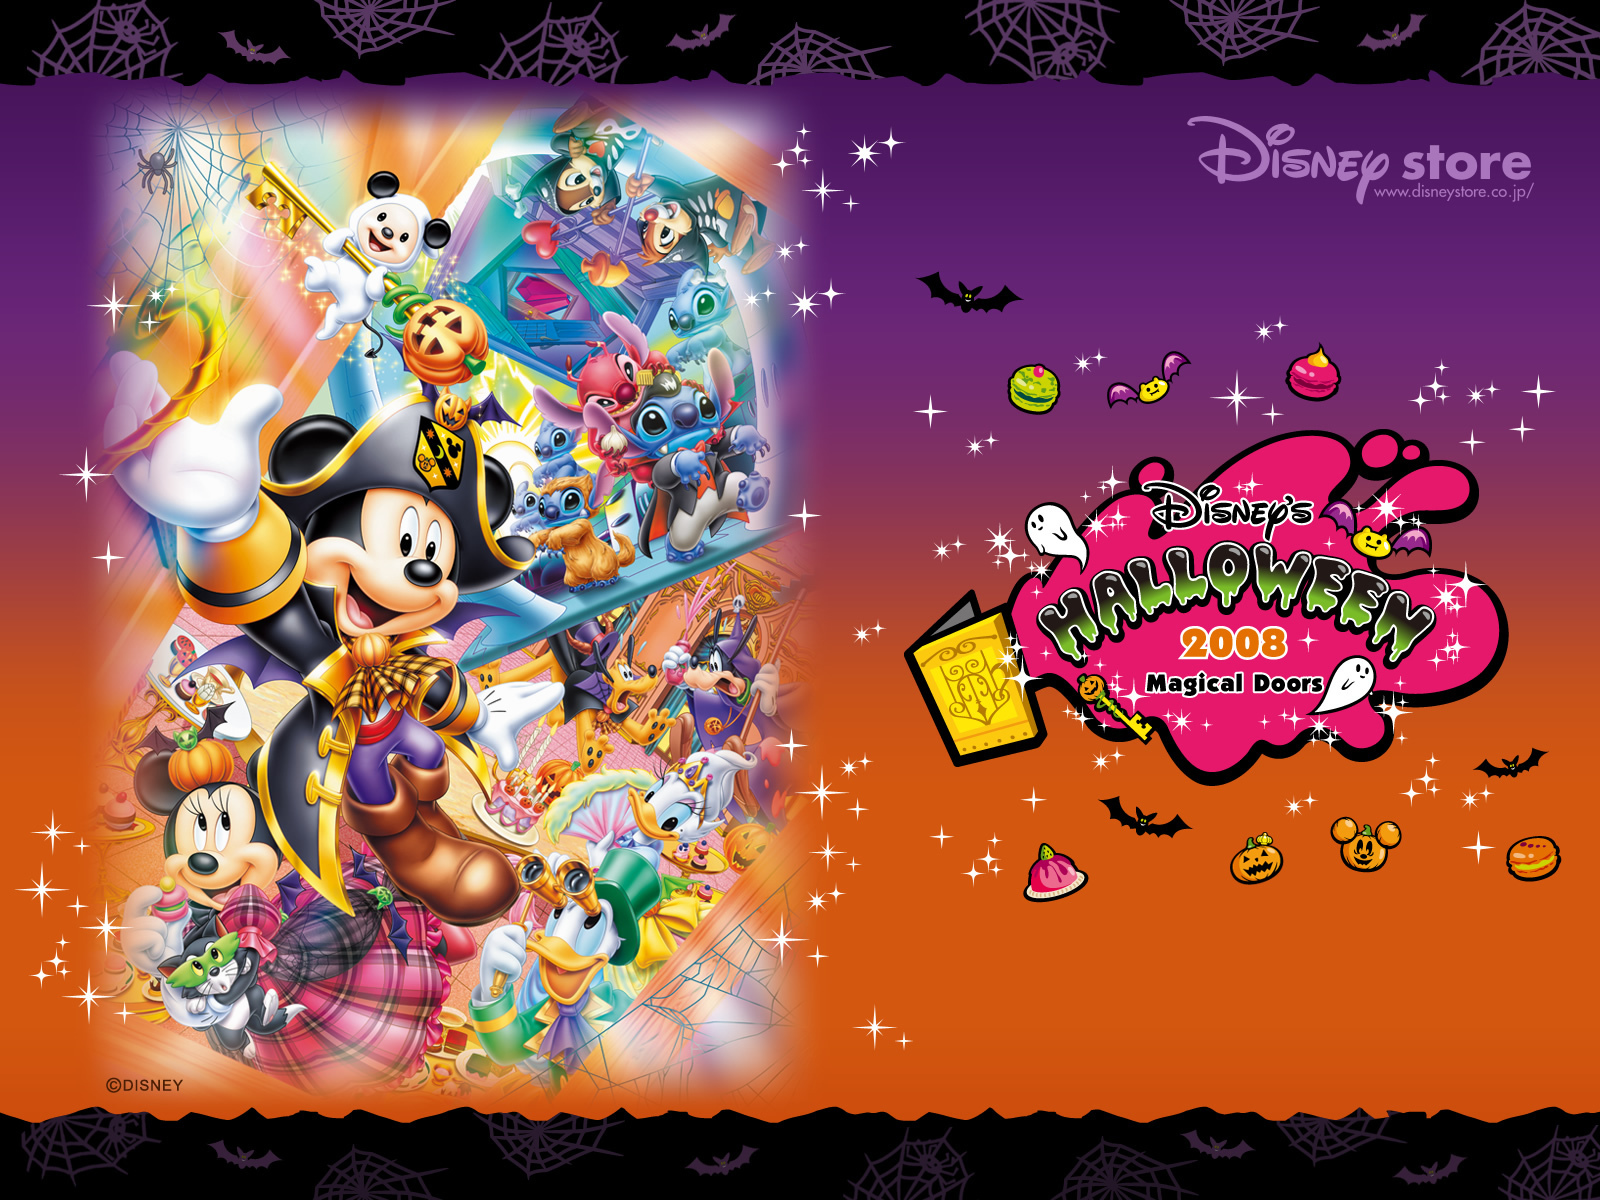 Disney Halloween 2008 Wallpaper - Disney Wallpaper (2428566) - Fanpop